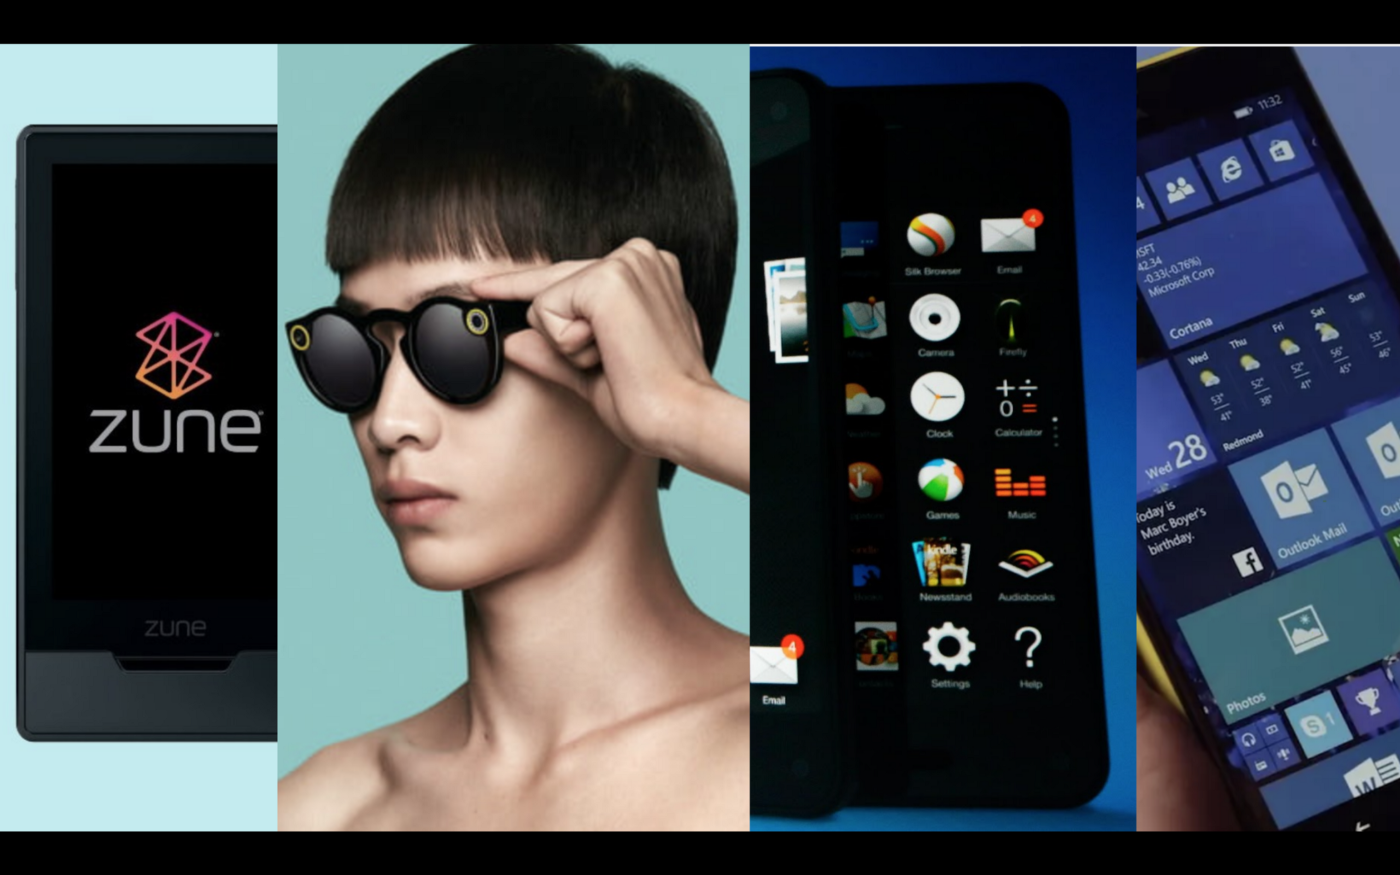 LTR: MS Zune, Snap Spectacles, Amazon Fire Phone, Windows Phone